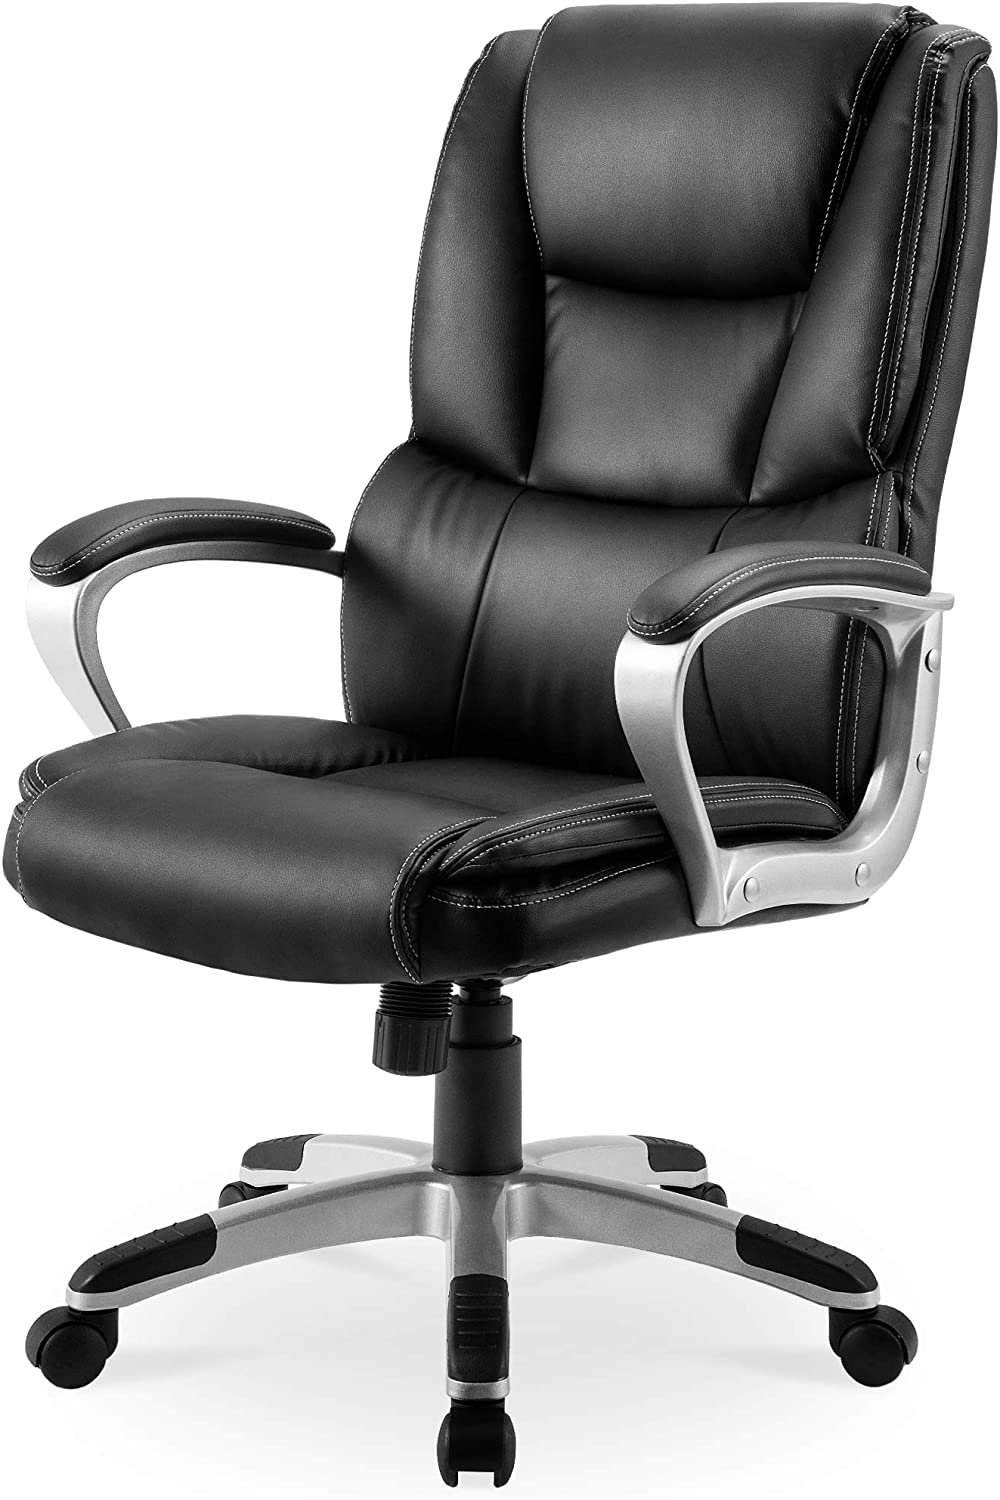 Executive Office Chair 300 LB Heavy Duty,JULYFOX PU Leather Gaming Chair High Back Ergonomic Lumbar Support Padded Seat Head Pillow Armrest Tilt Control Bonded Swivel Desk Chair-Black